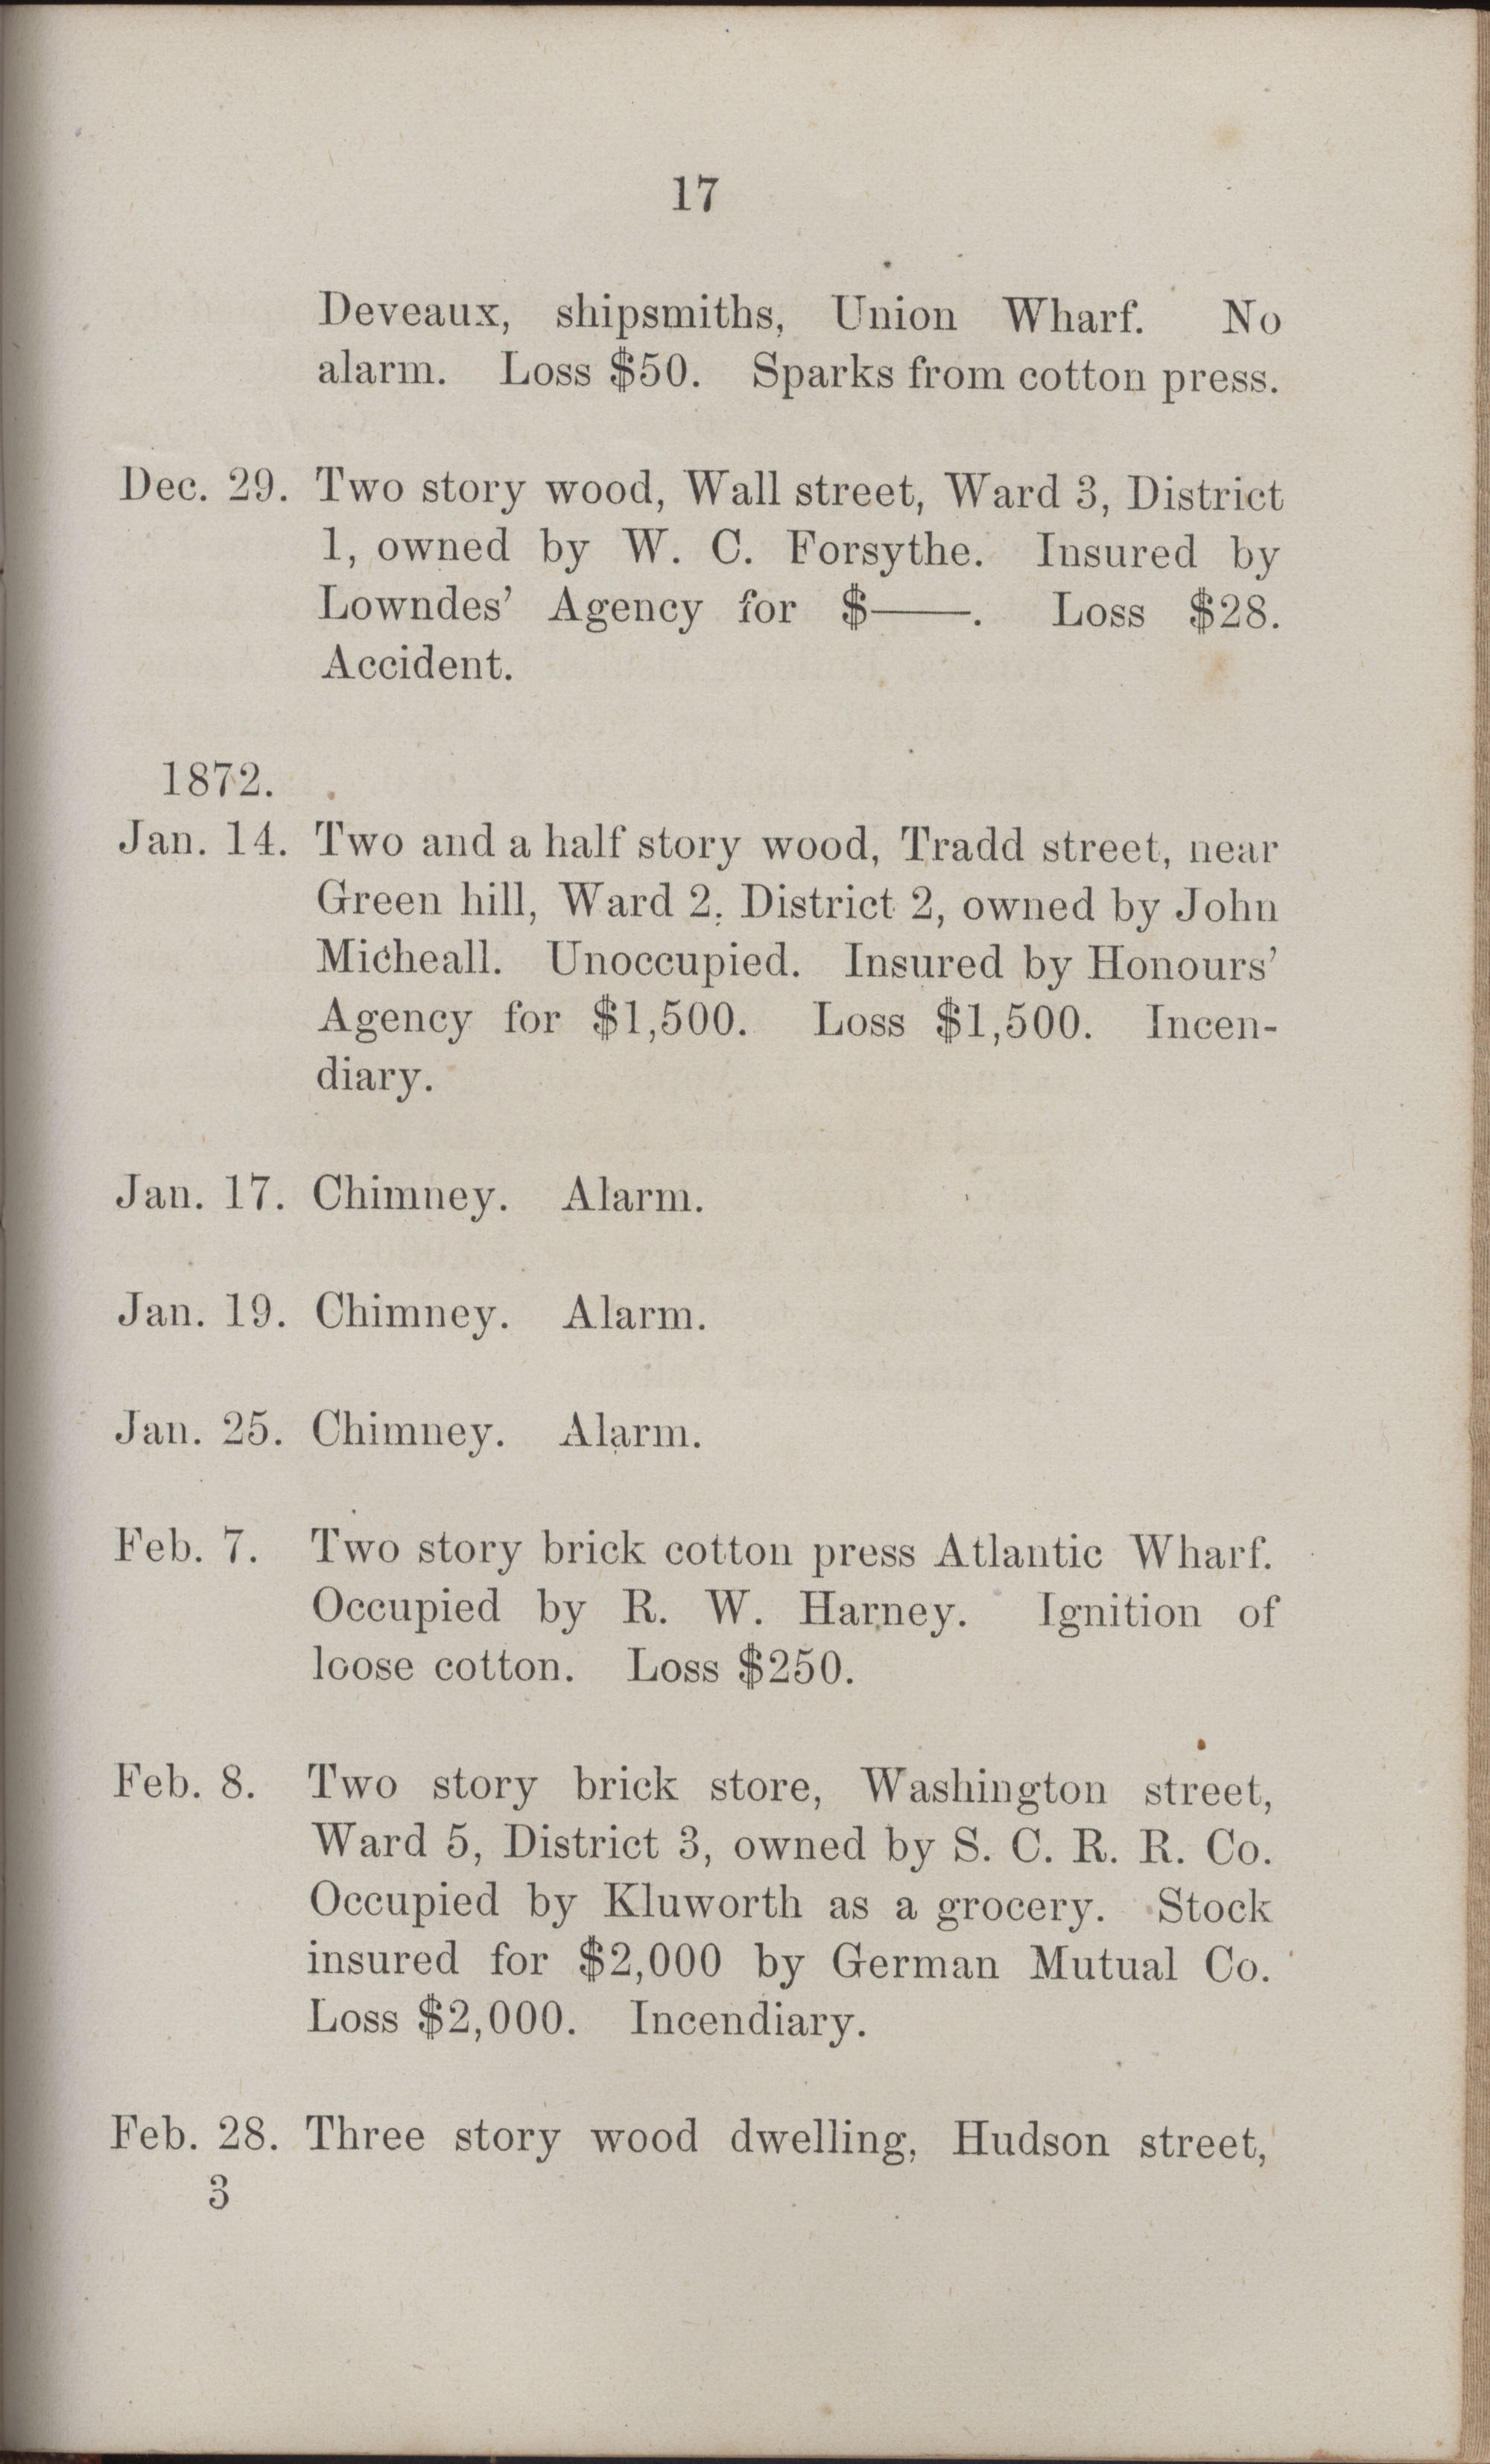 Annual Report of the Chief of the Fire Department of the City of Charleston, page 412